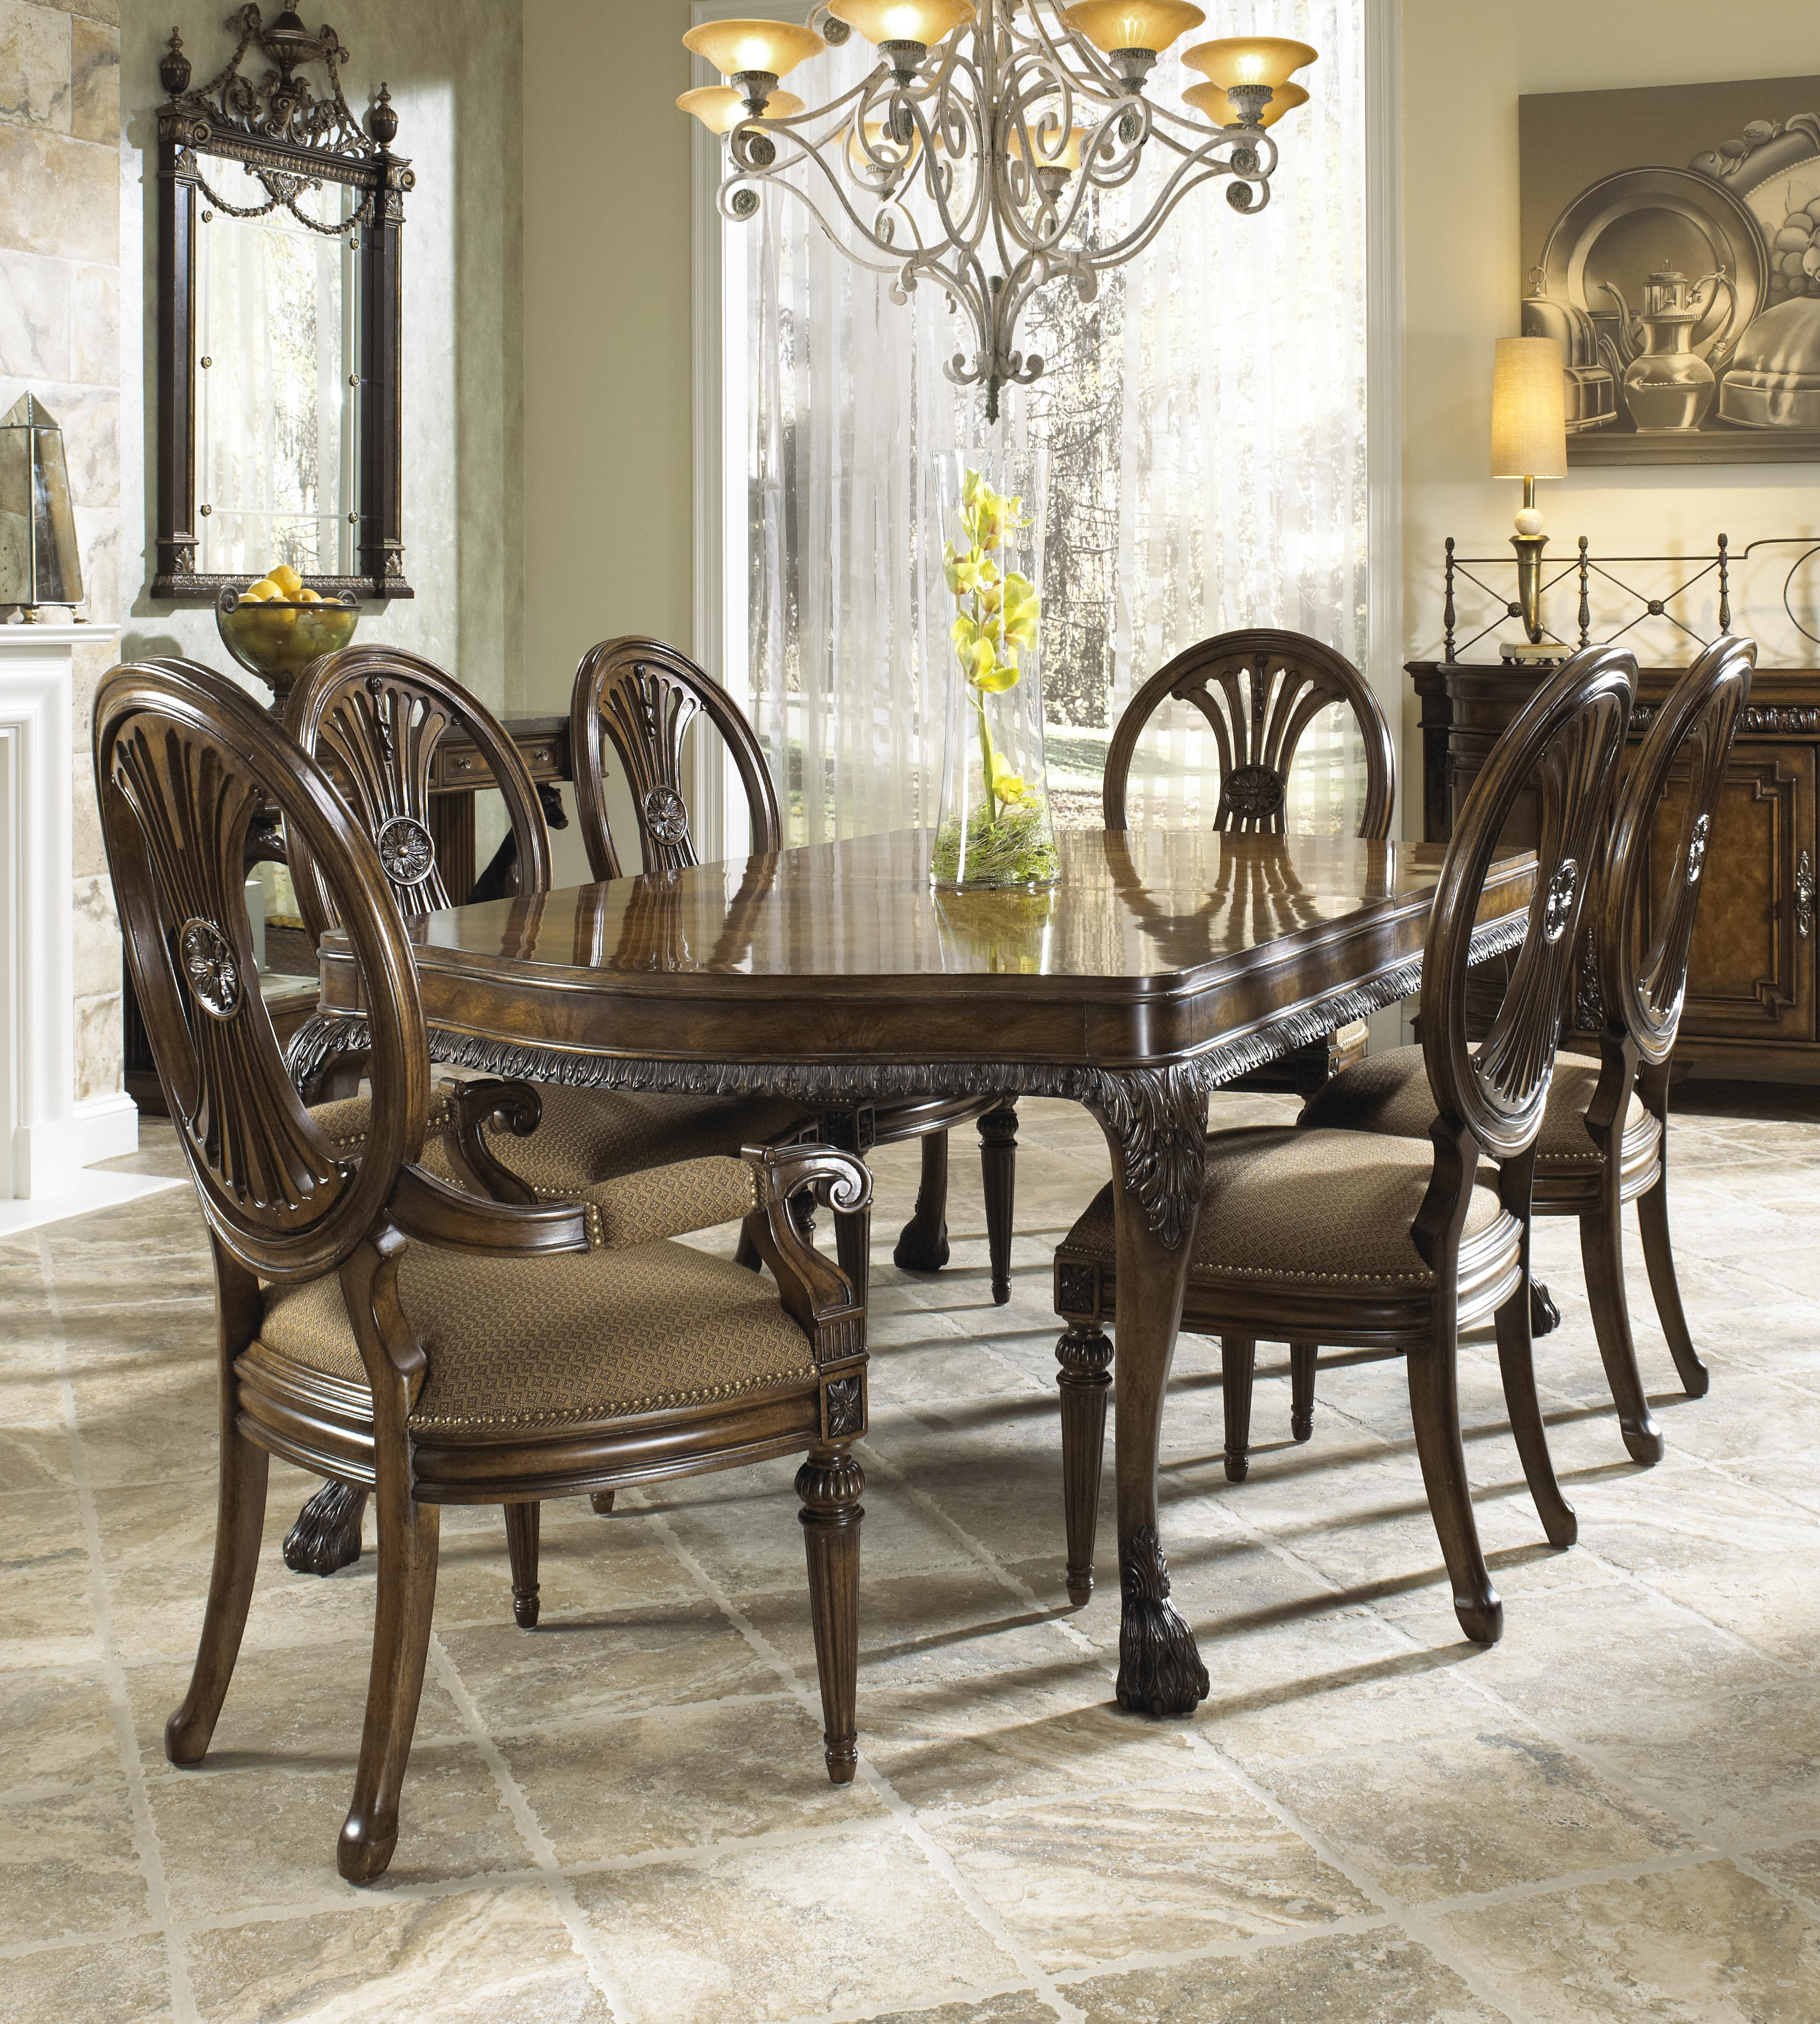 Antique upholstered chair styles - Traditional Antique Style Dining Arm Chair With Coffee Colored Upholstery